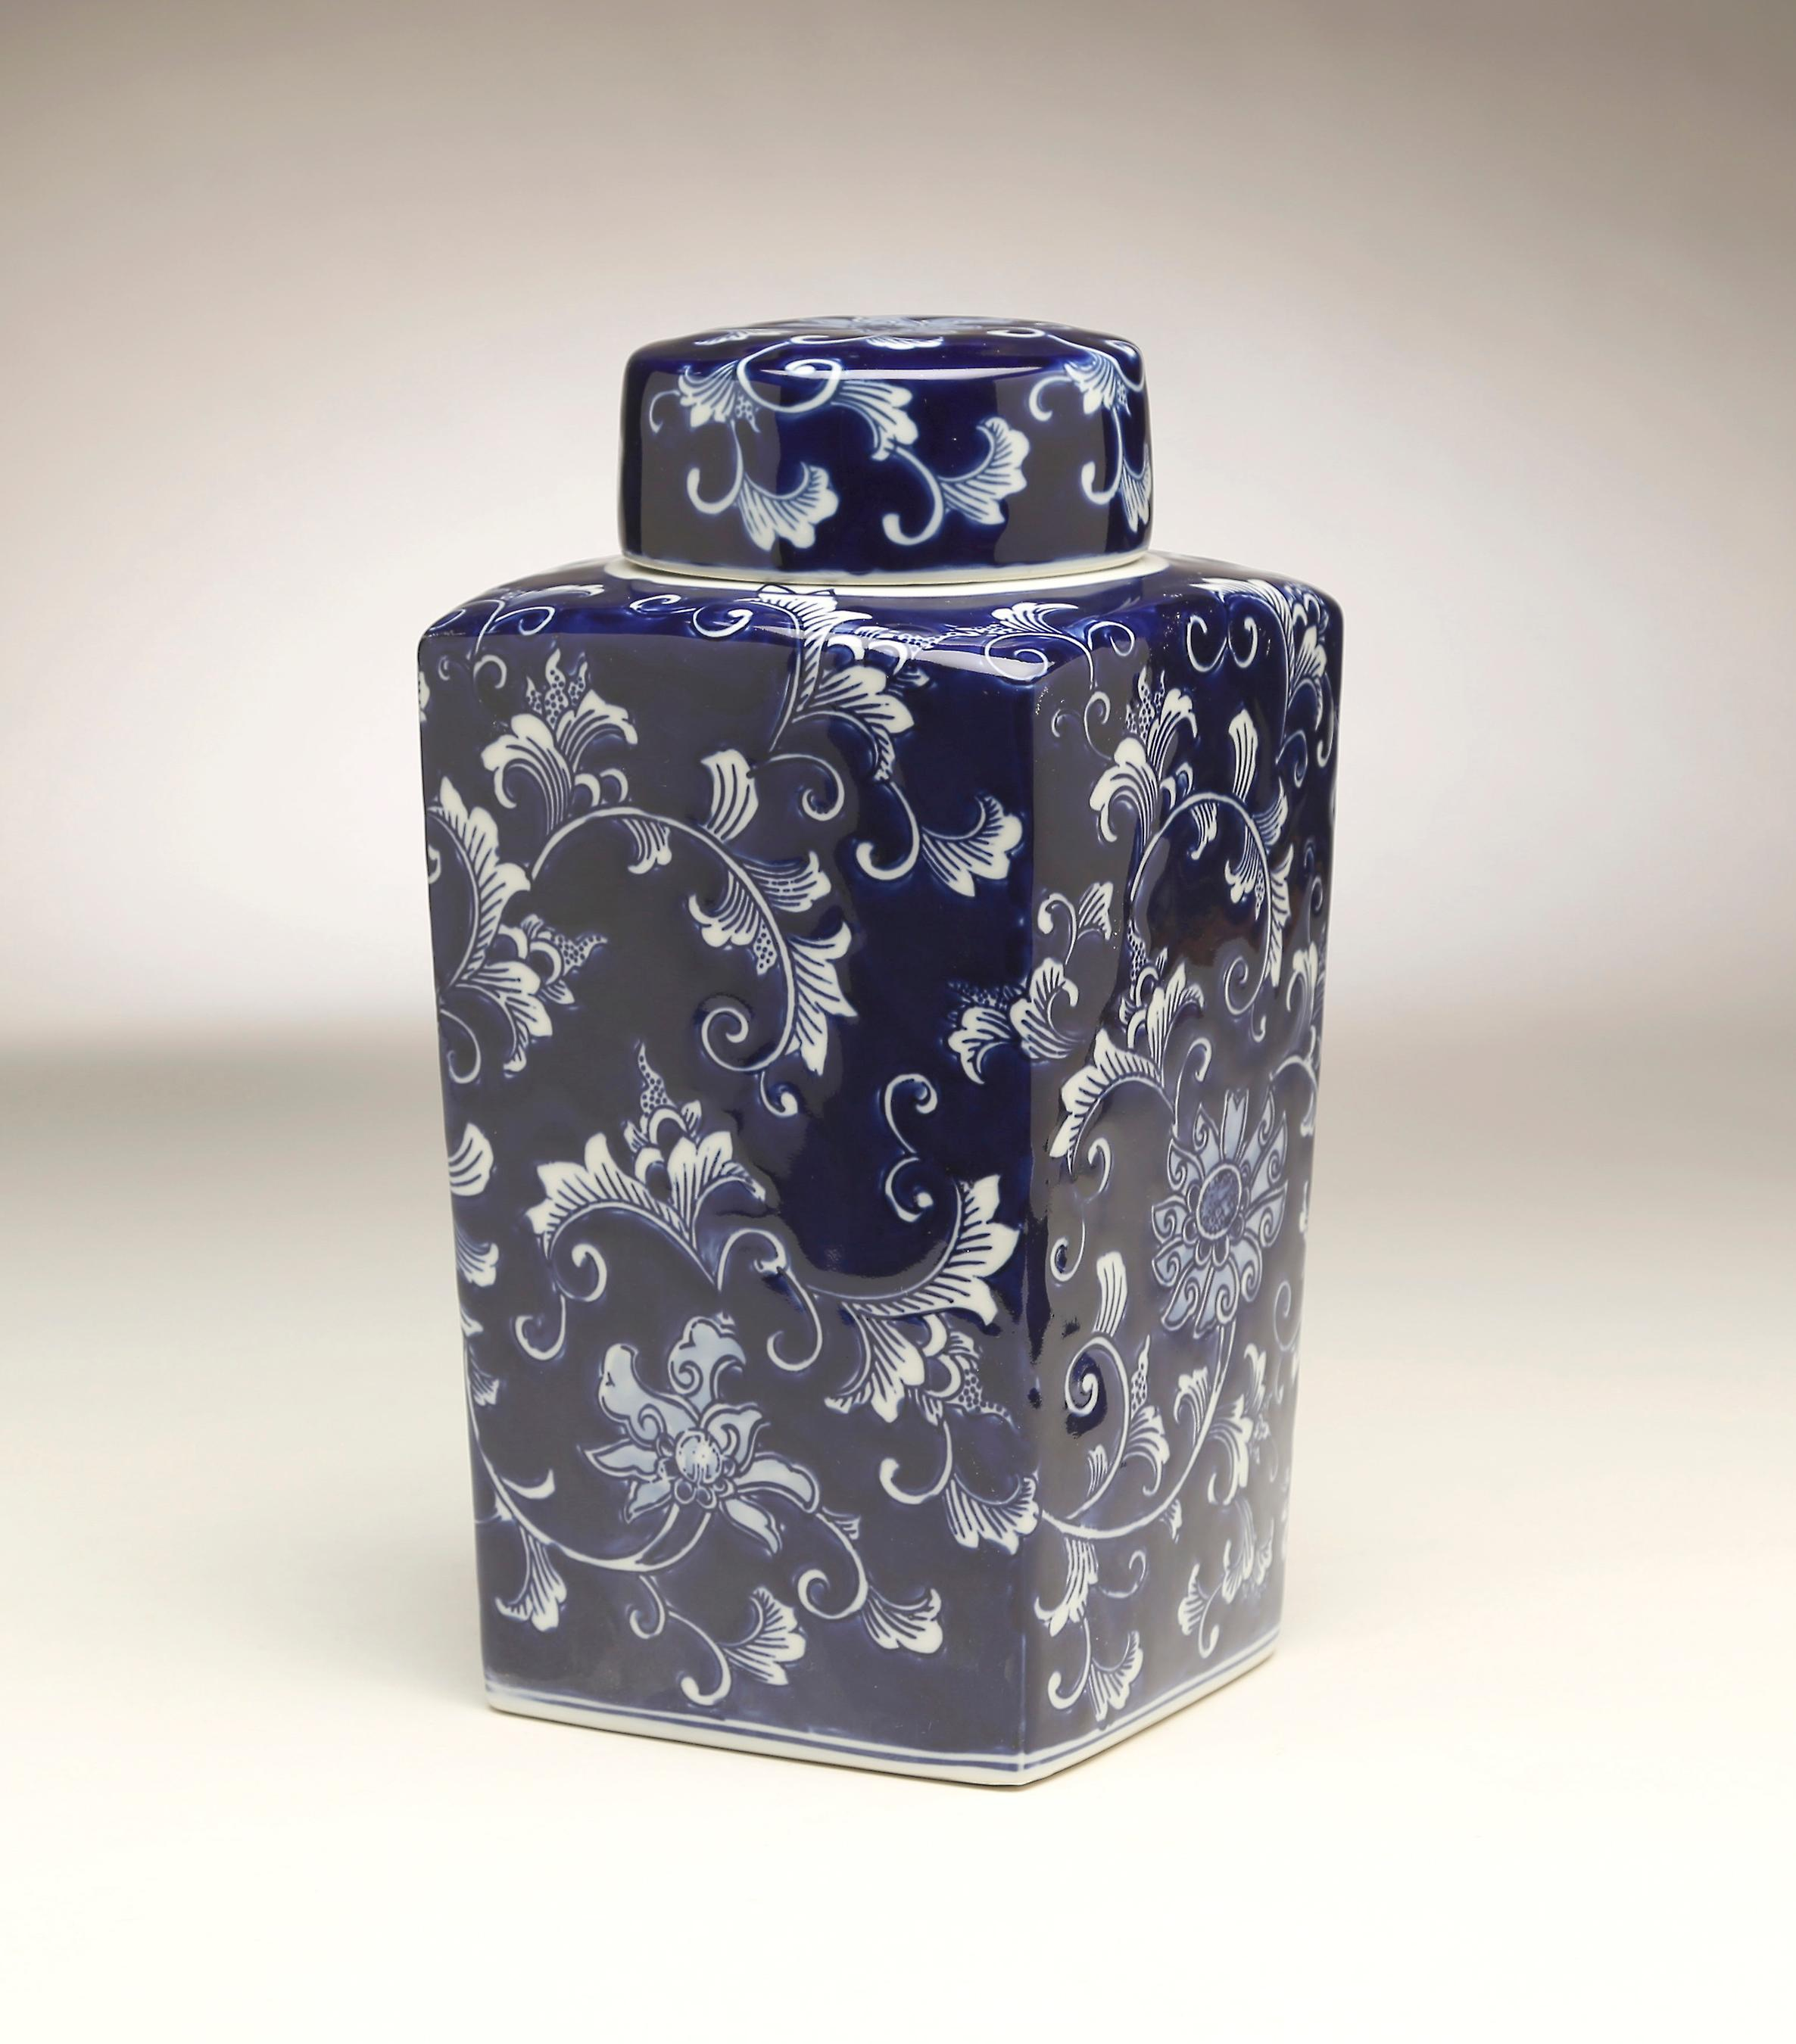 AA Importing 59948 12 Inch Square Blue & White Jar